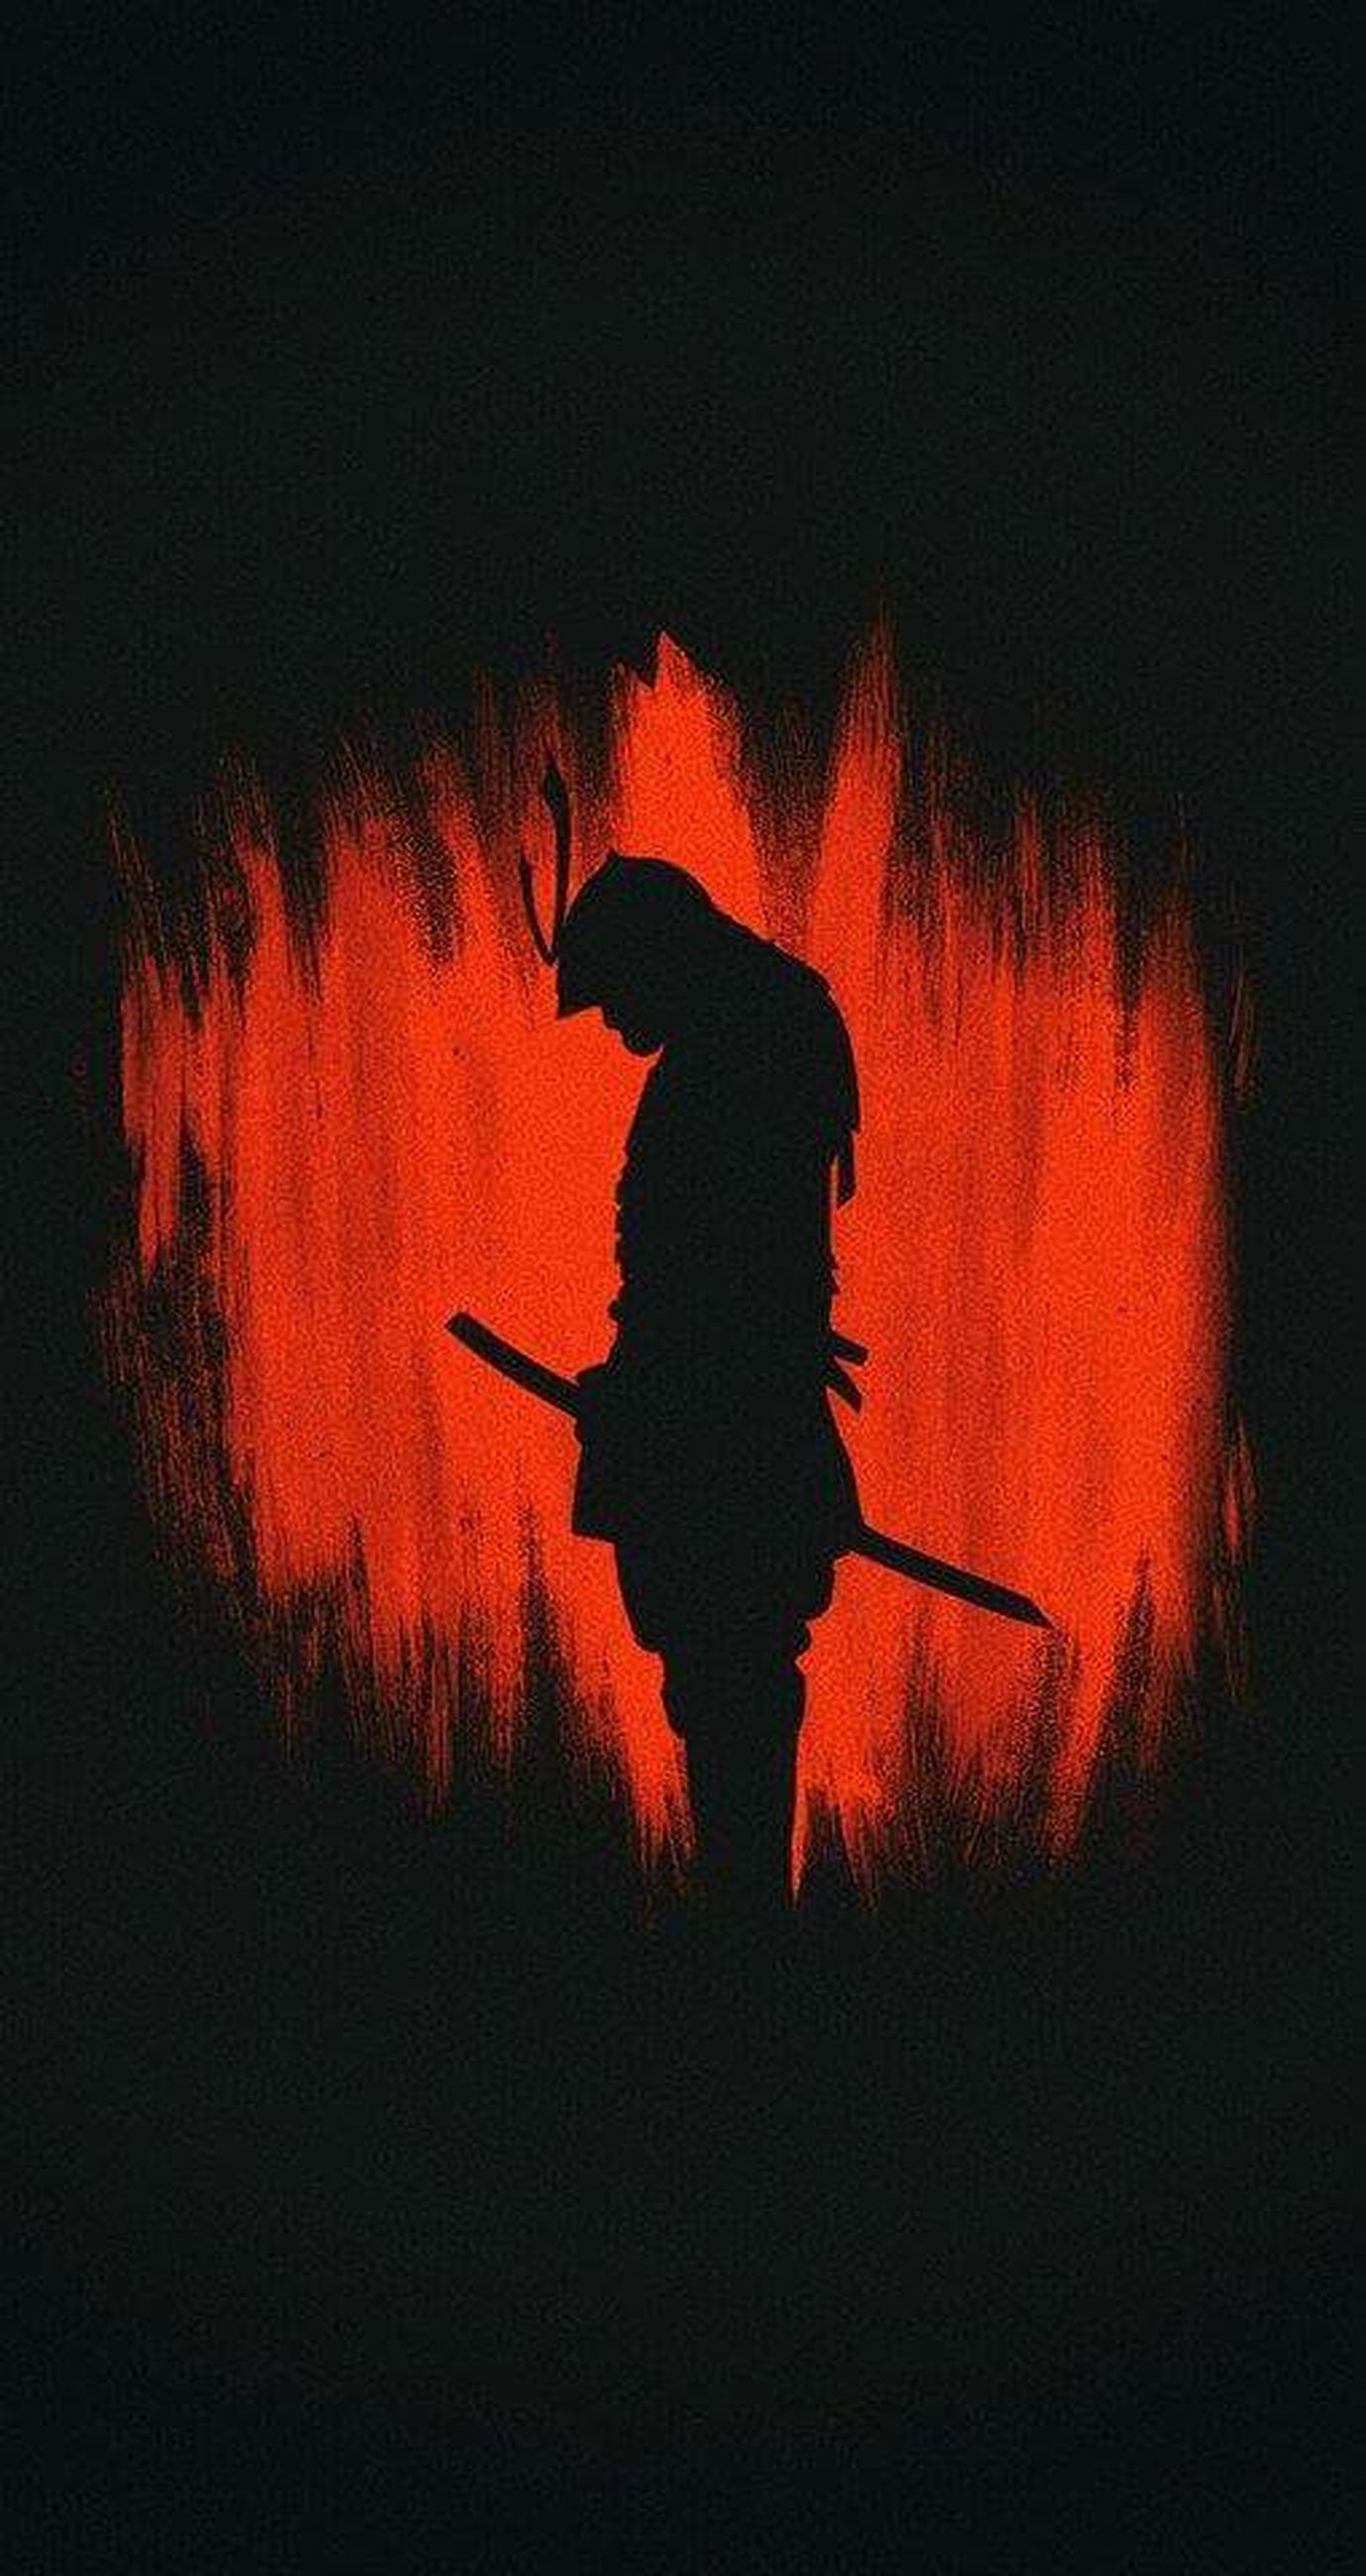 heat - temperature, red, night, silhouette, danger, outdoors, one person, people